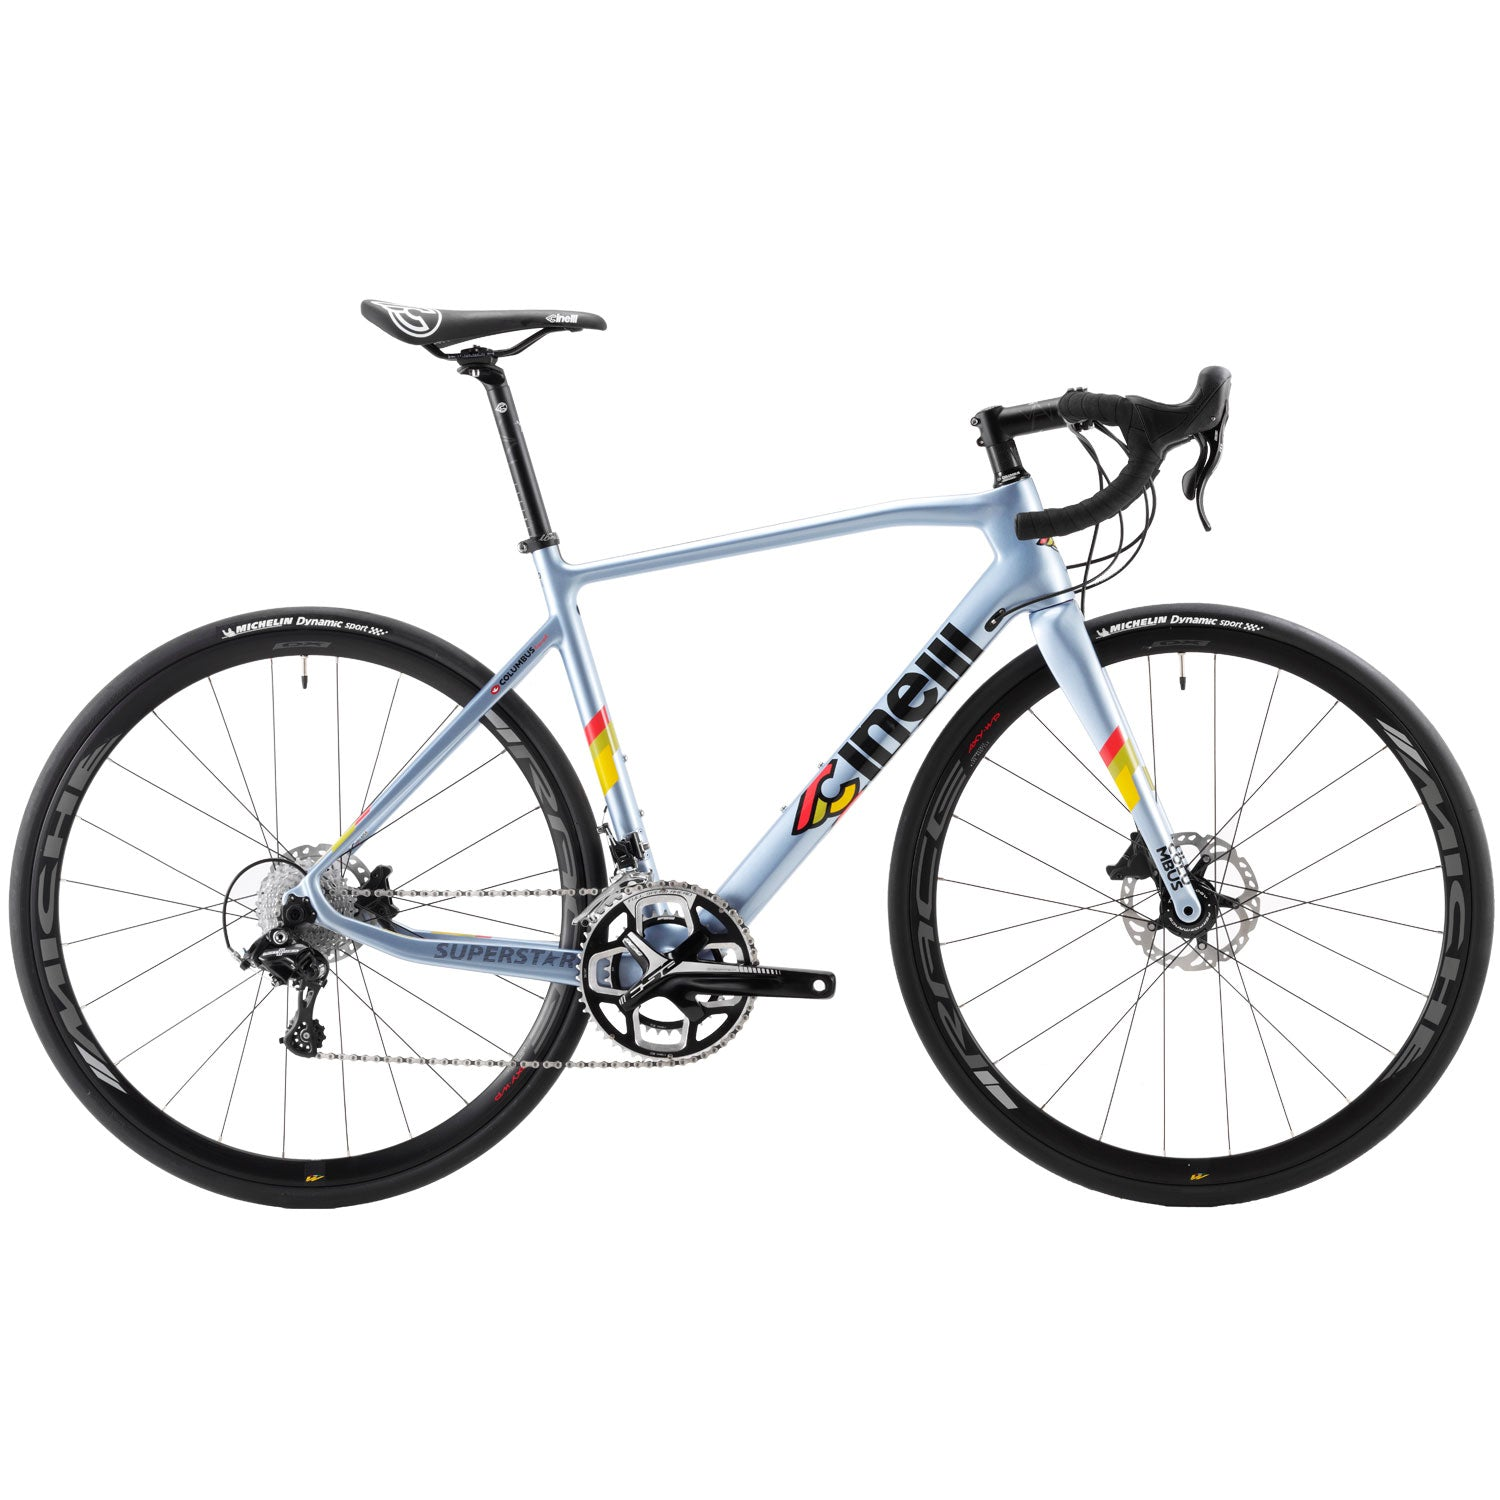 Cinelli Superstar Disc Ultegra Hydro 2020